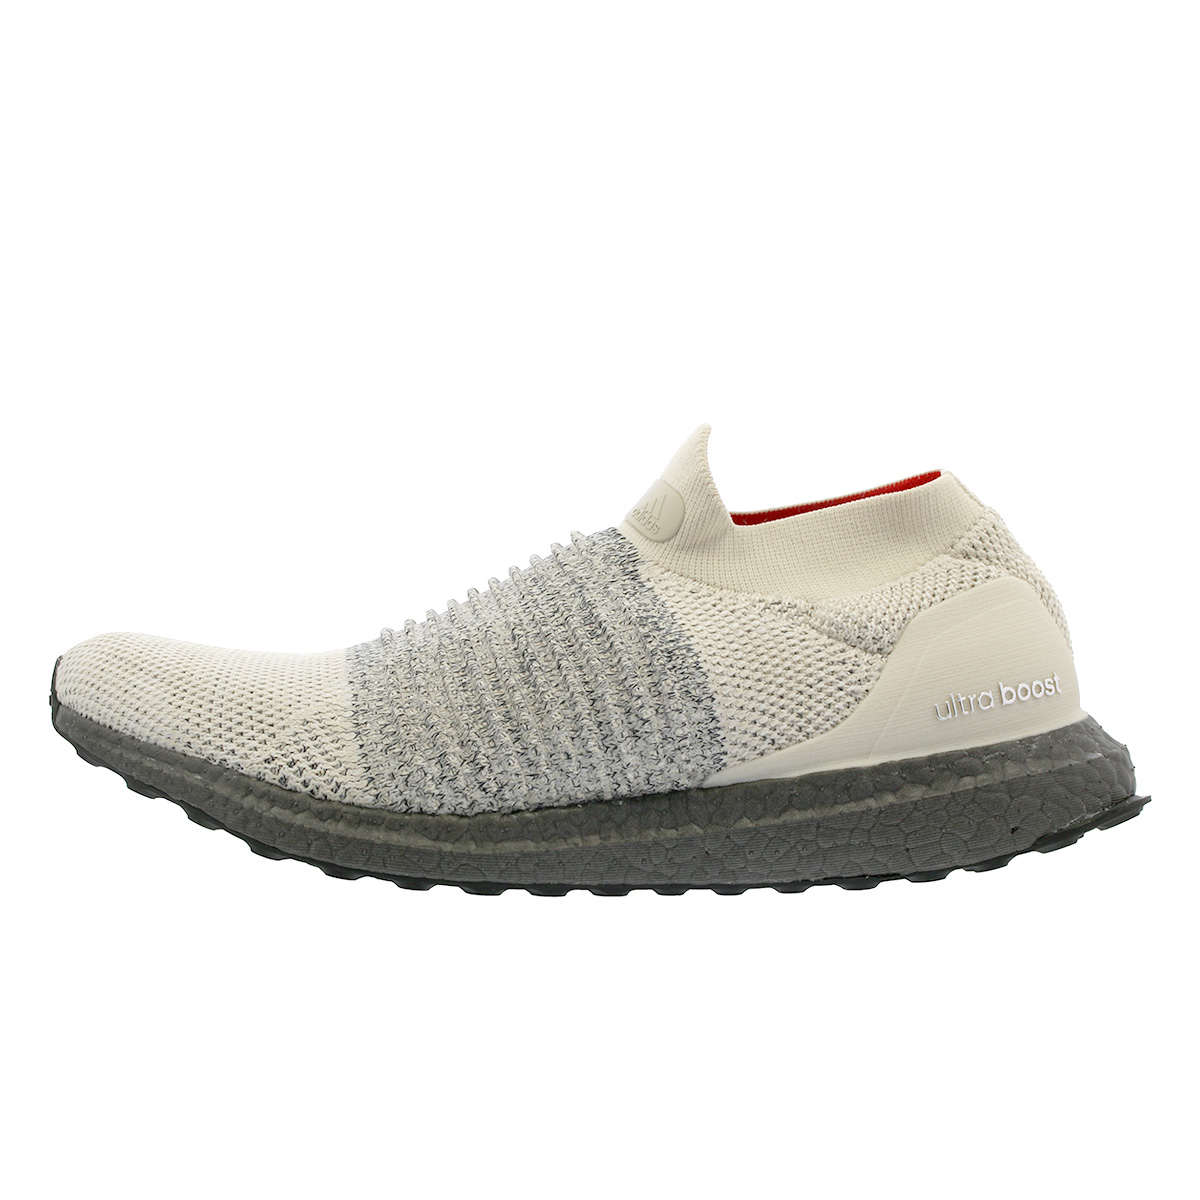 adidas UltraBOOST LACELESS Adidas ultra boost raceless CLEAR BROWNCLOUD WHITECARBON cm8263